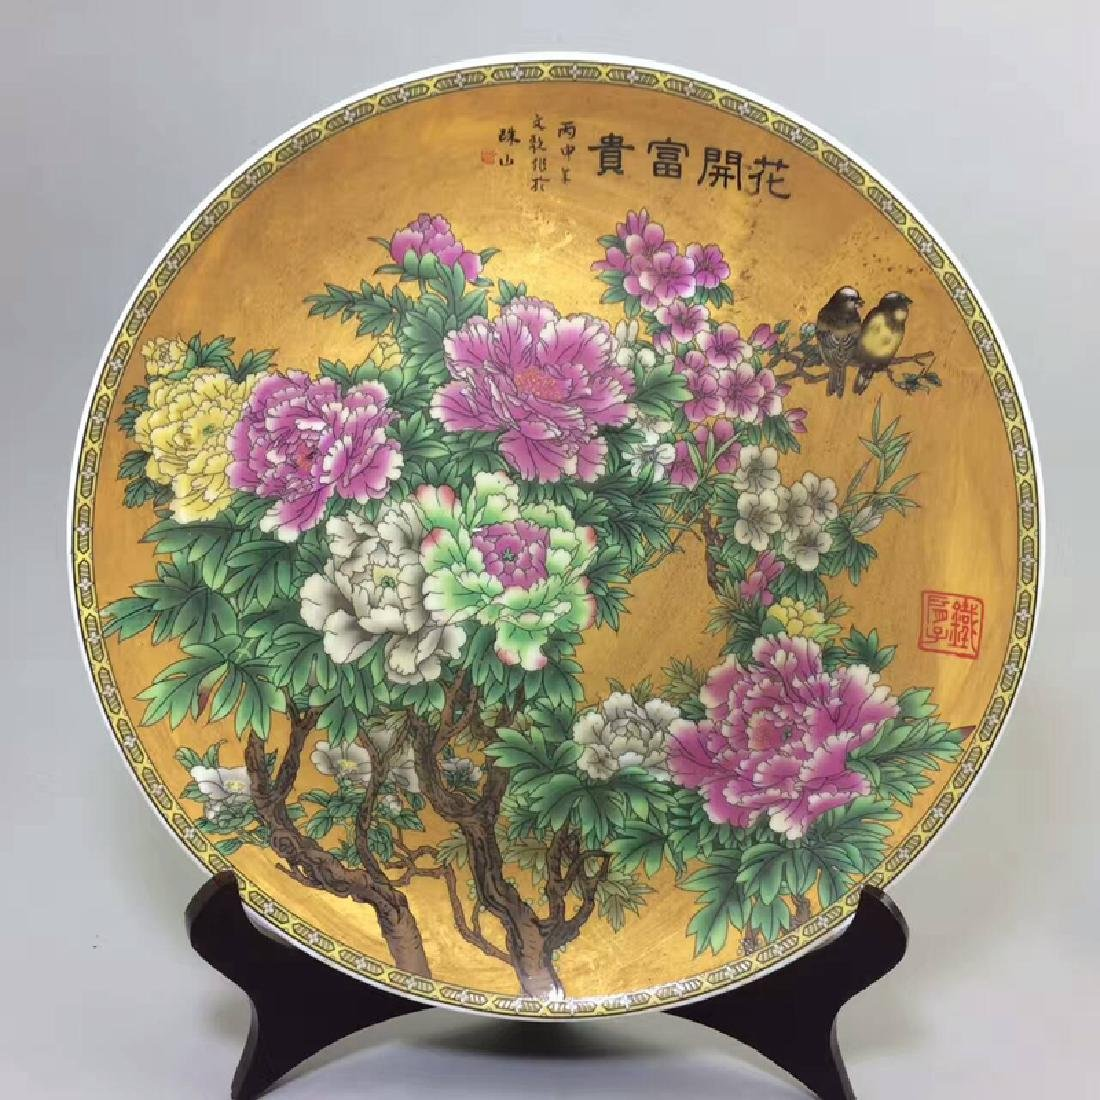 Chinese Antique Porcelain Plate With Flower Decoration